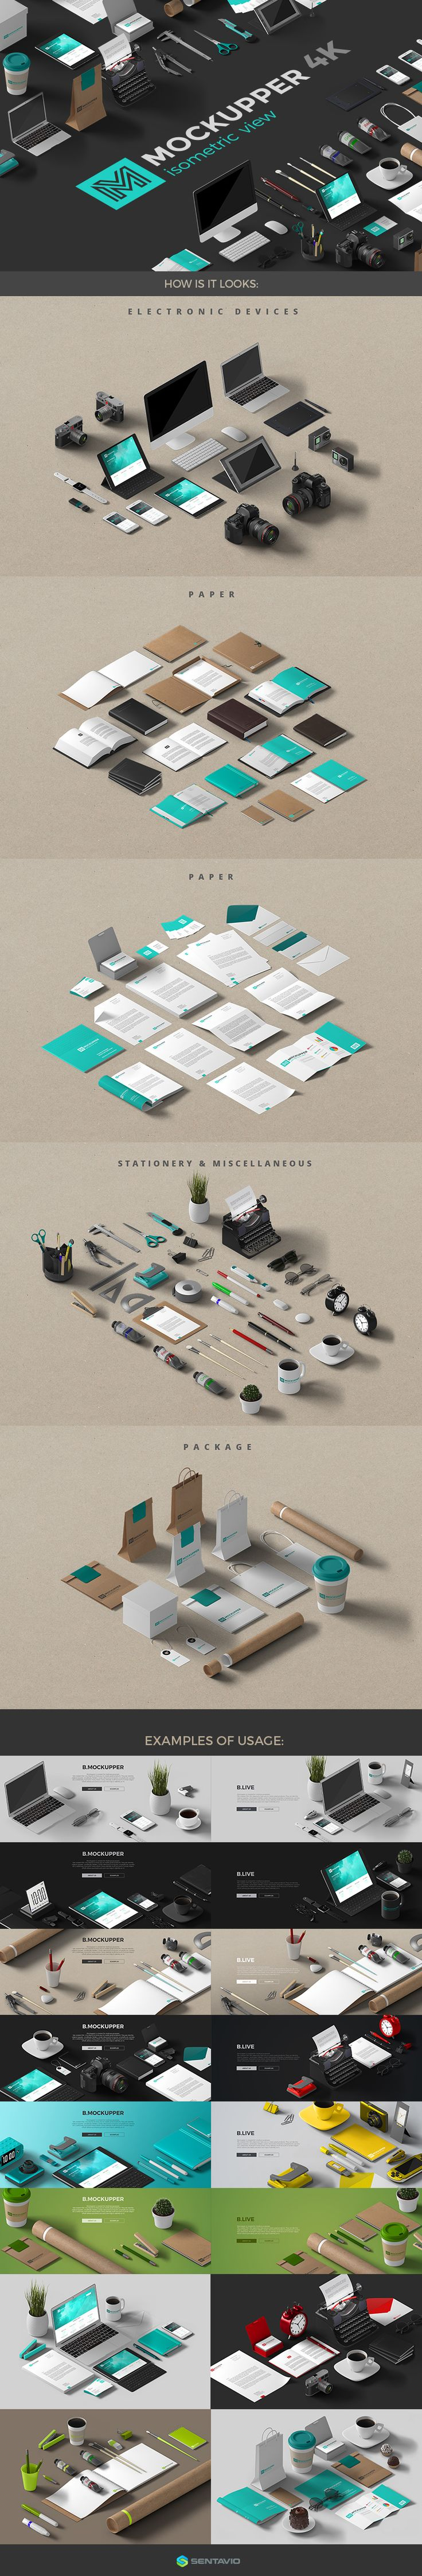 Mockupper Isometric Scene Generator on Behance Mockupper : Isometric view 4K - 100+ High resolution and quality mockup objects scene generator which will help you to create different images such as Product promo, Identity, Hero images and other compositions.  *Mockupper : TOP view 4K is here: https://creativemarket.com/Sentavio/878451-Mockupper-Scene-Generator-topview-4K Objects included in Mockupper: Electronic devices Package Paper Miscellaneous